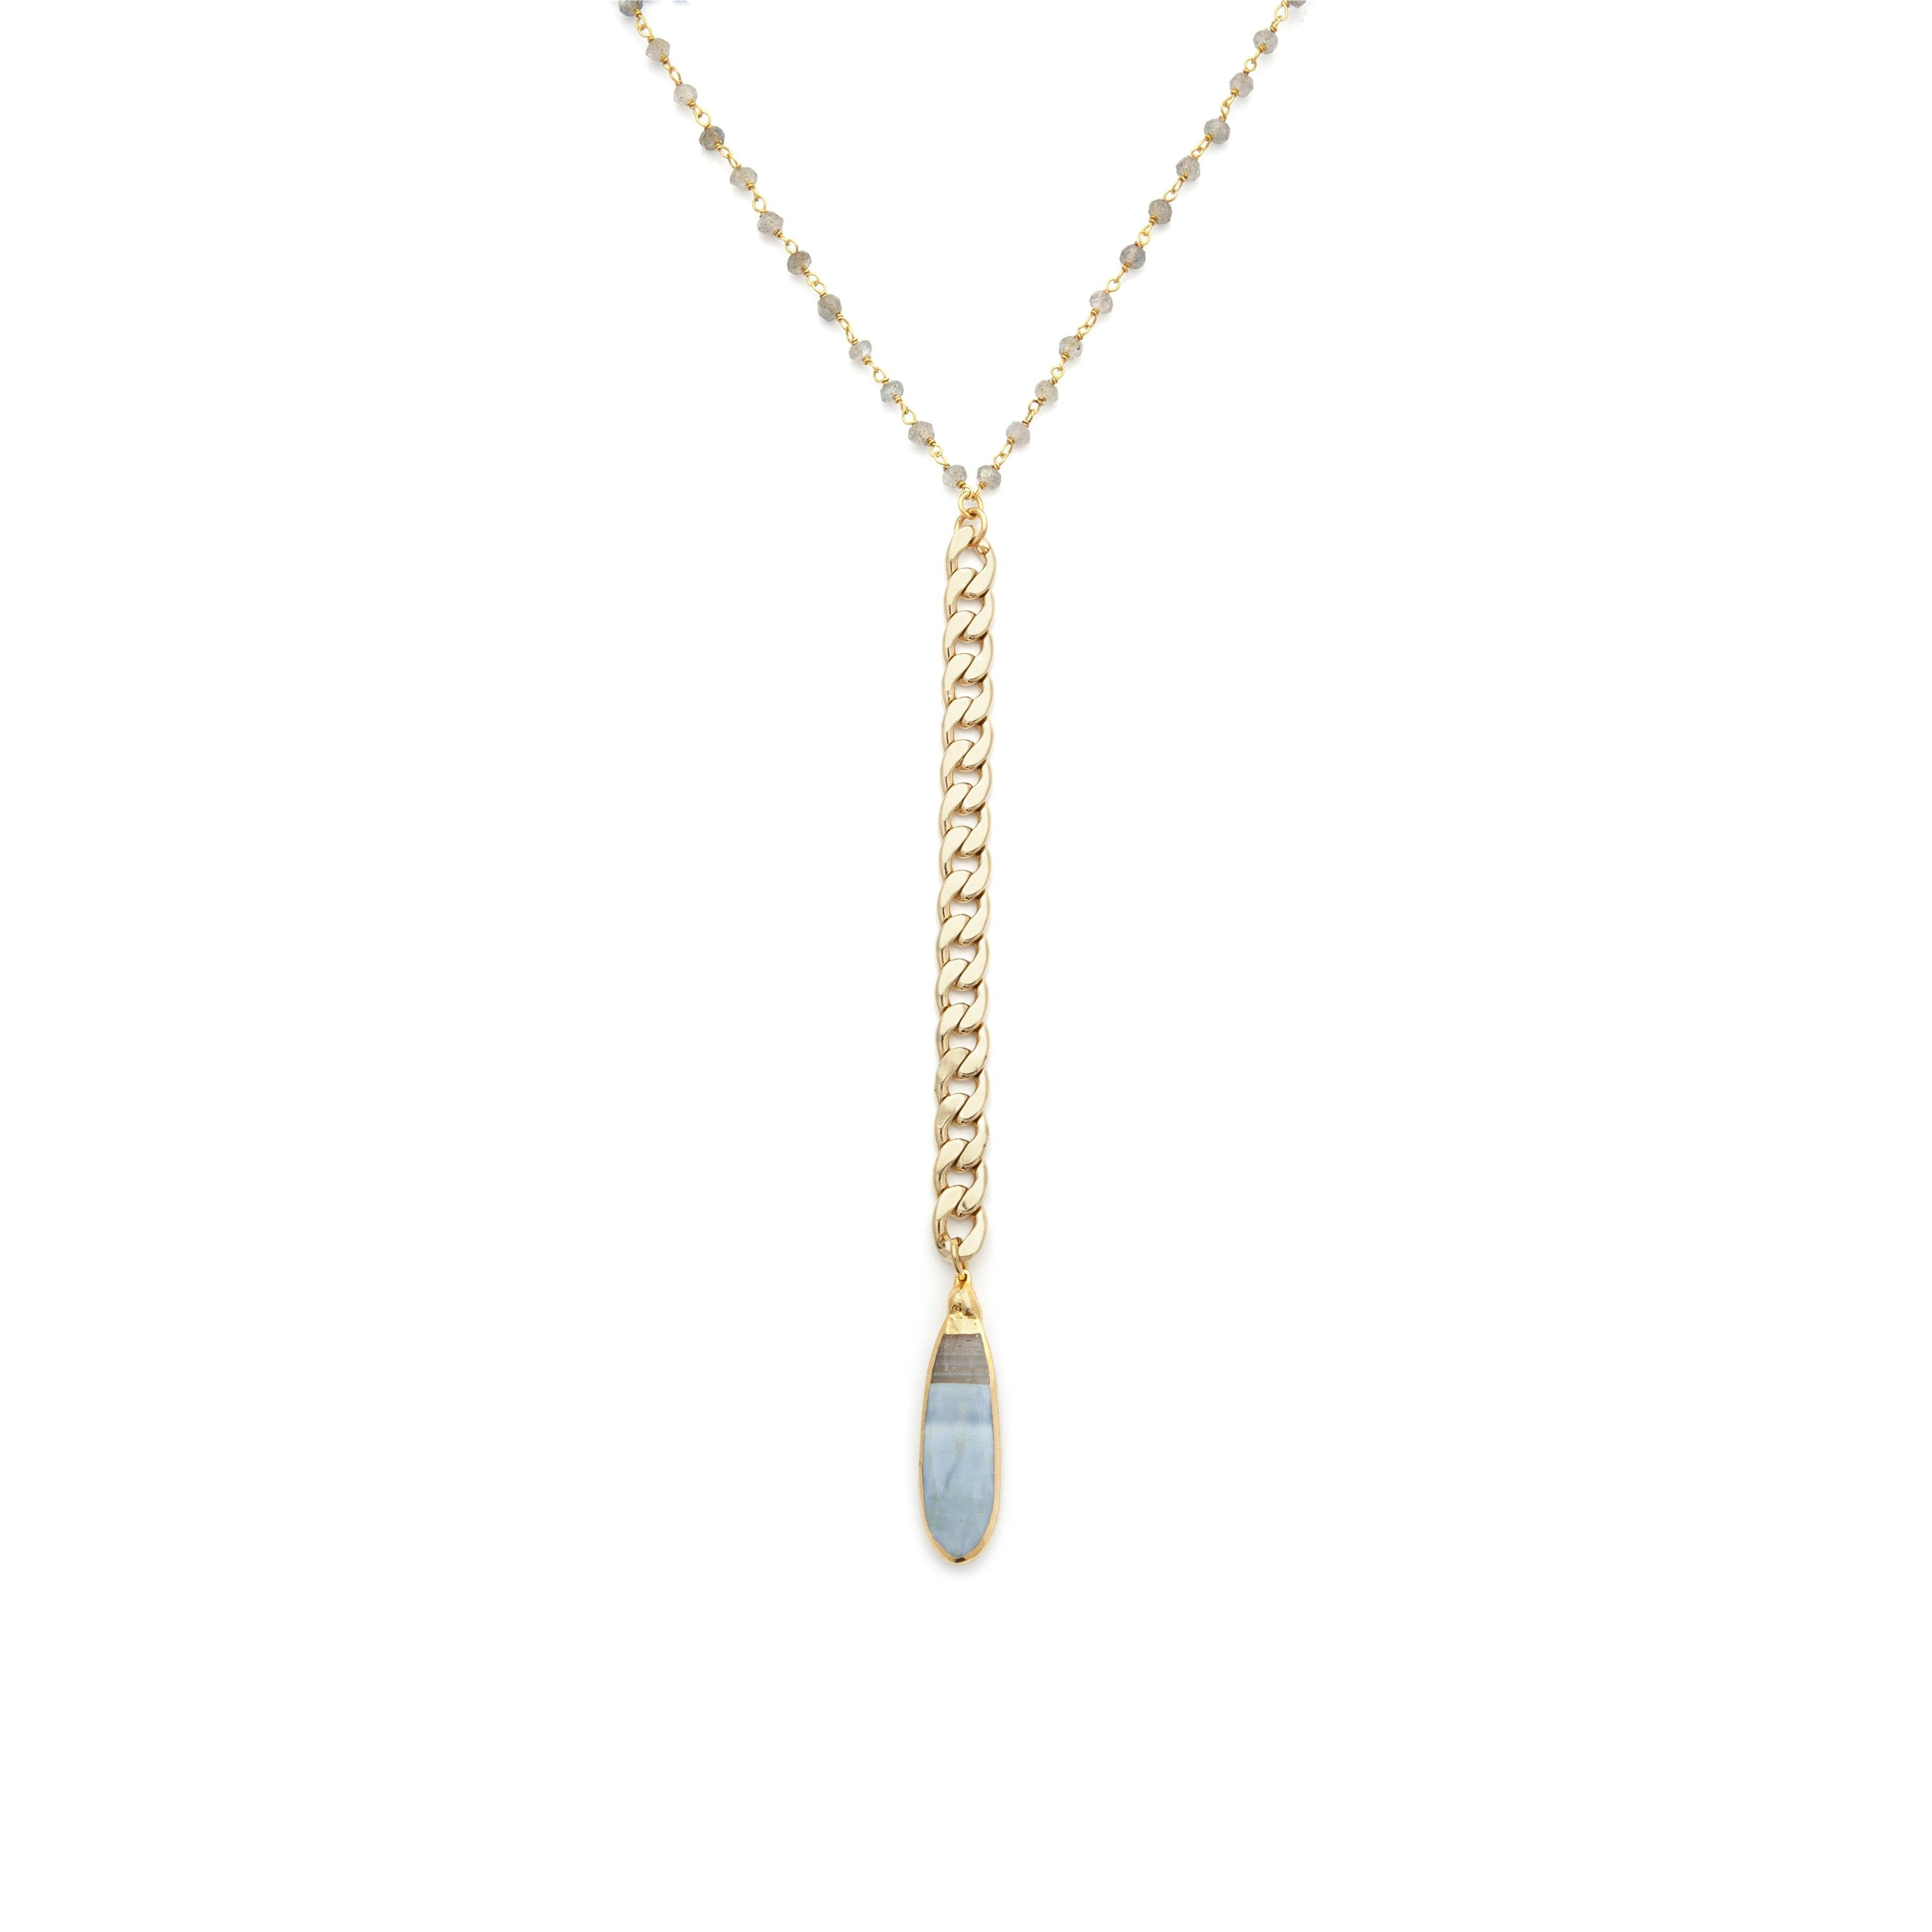 Bi-color Moonstone Necklace - Irit Sorokin Designs Canadian handmade jewelry